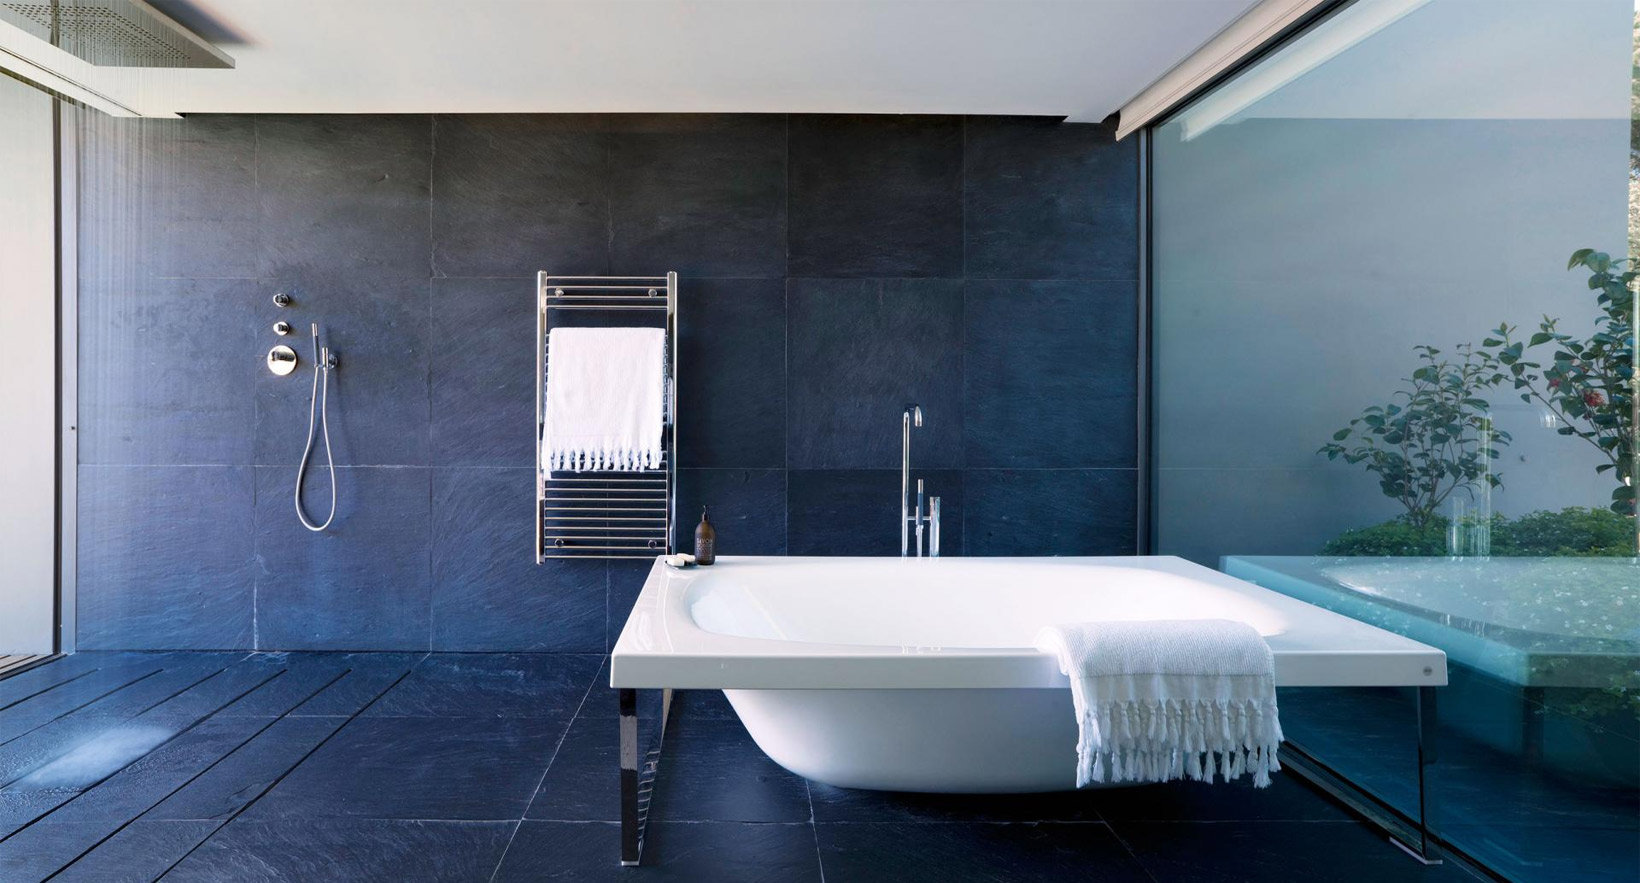 Varme Wetroom Systems Varme